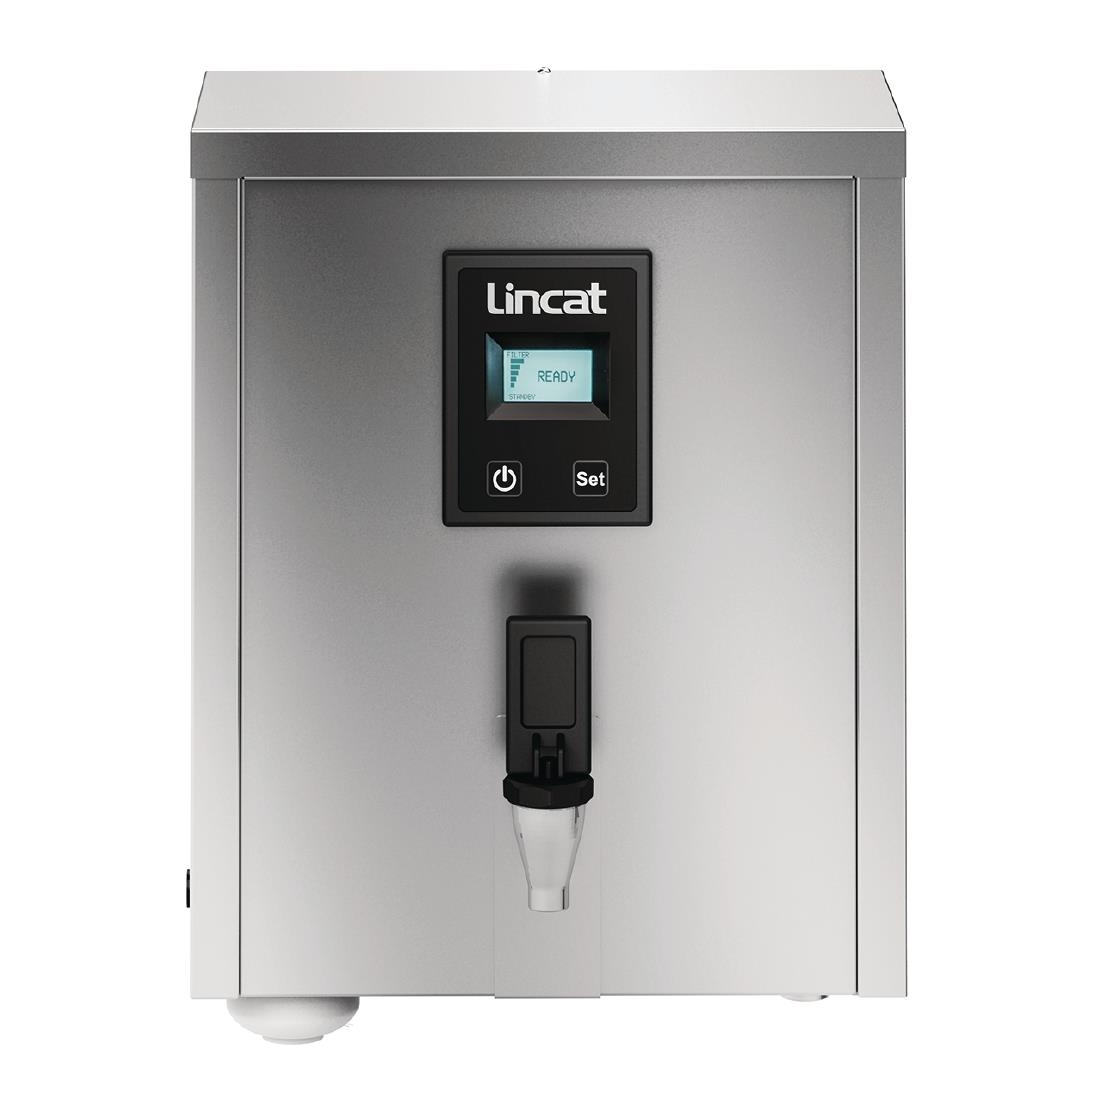 Lincat 5Ltr Wall Mounted Auto Fill Water Boiler with Filtration M5F